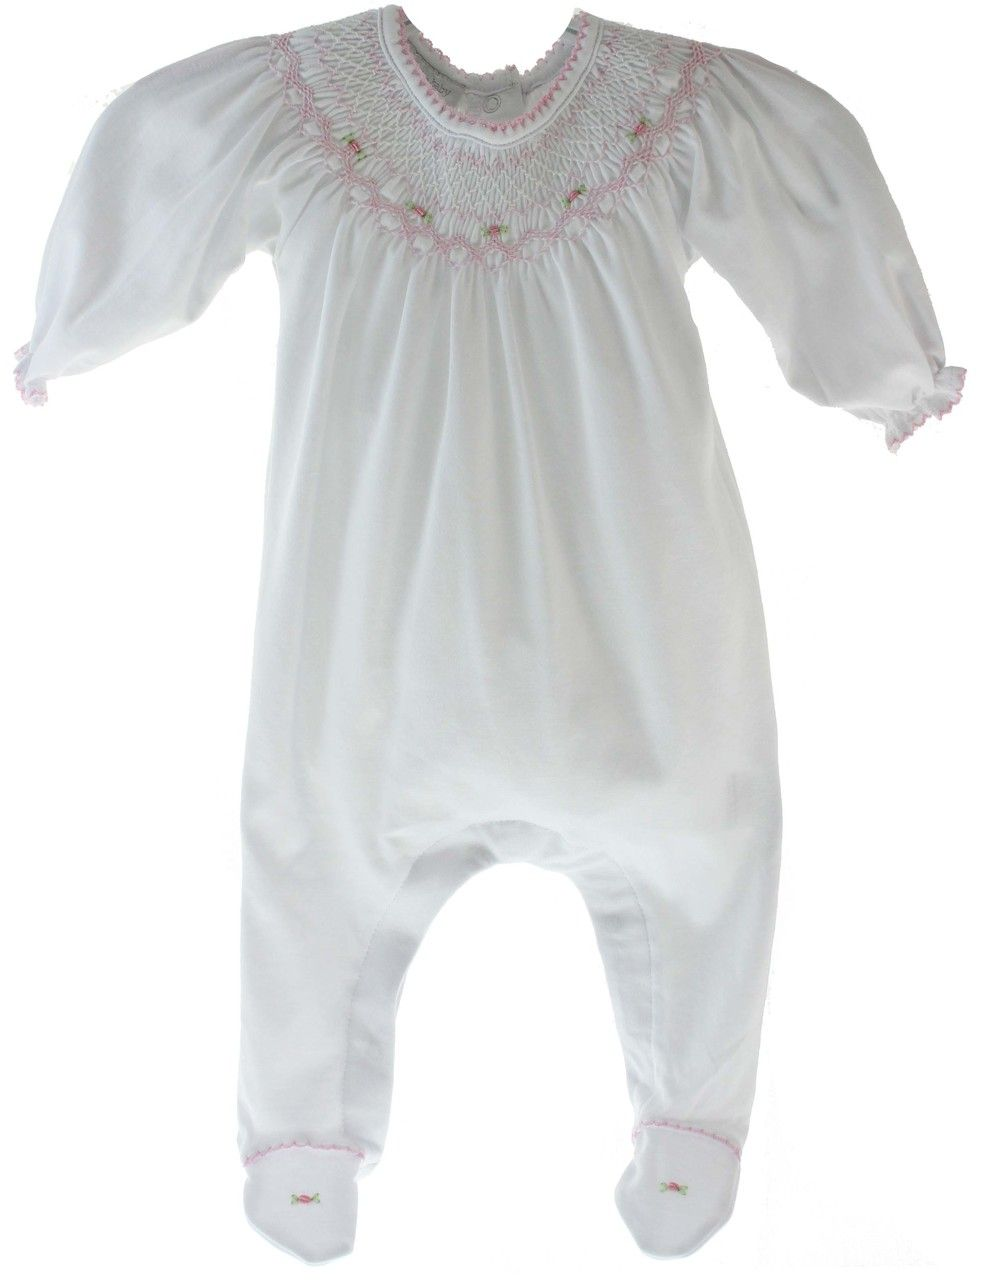 Magnolia Baby Boys Blue Take Home Sleeper Footed Cotton Layette Outfit with Smocking